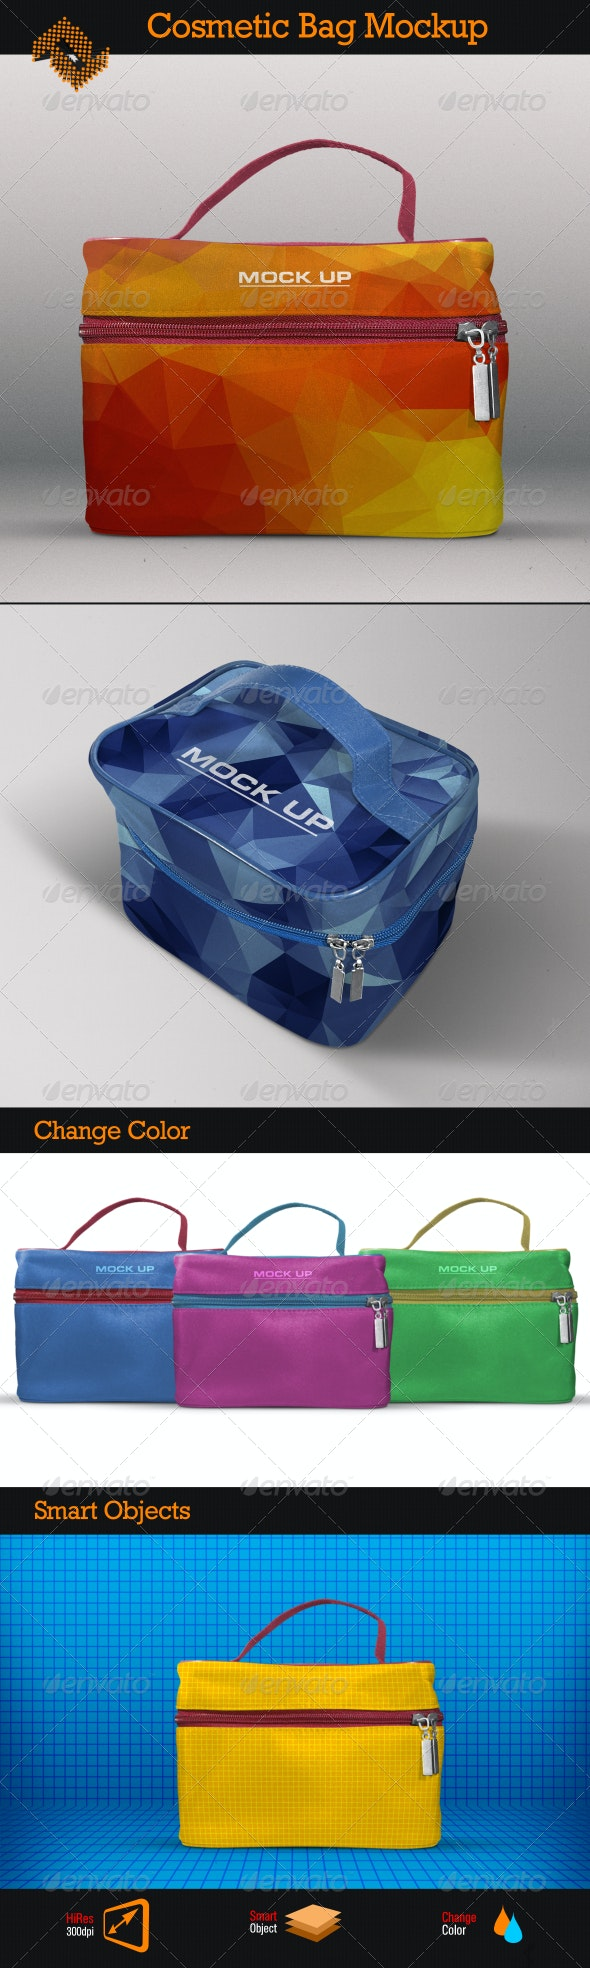 Cosmetic Travel Case Mockup - Miscellaneous Product Mock-Ups